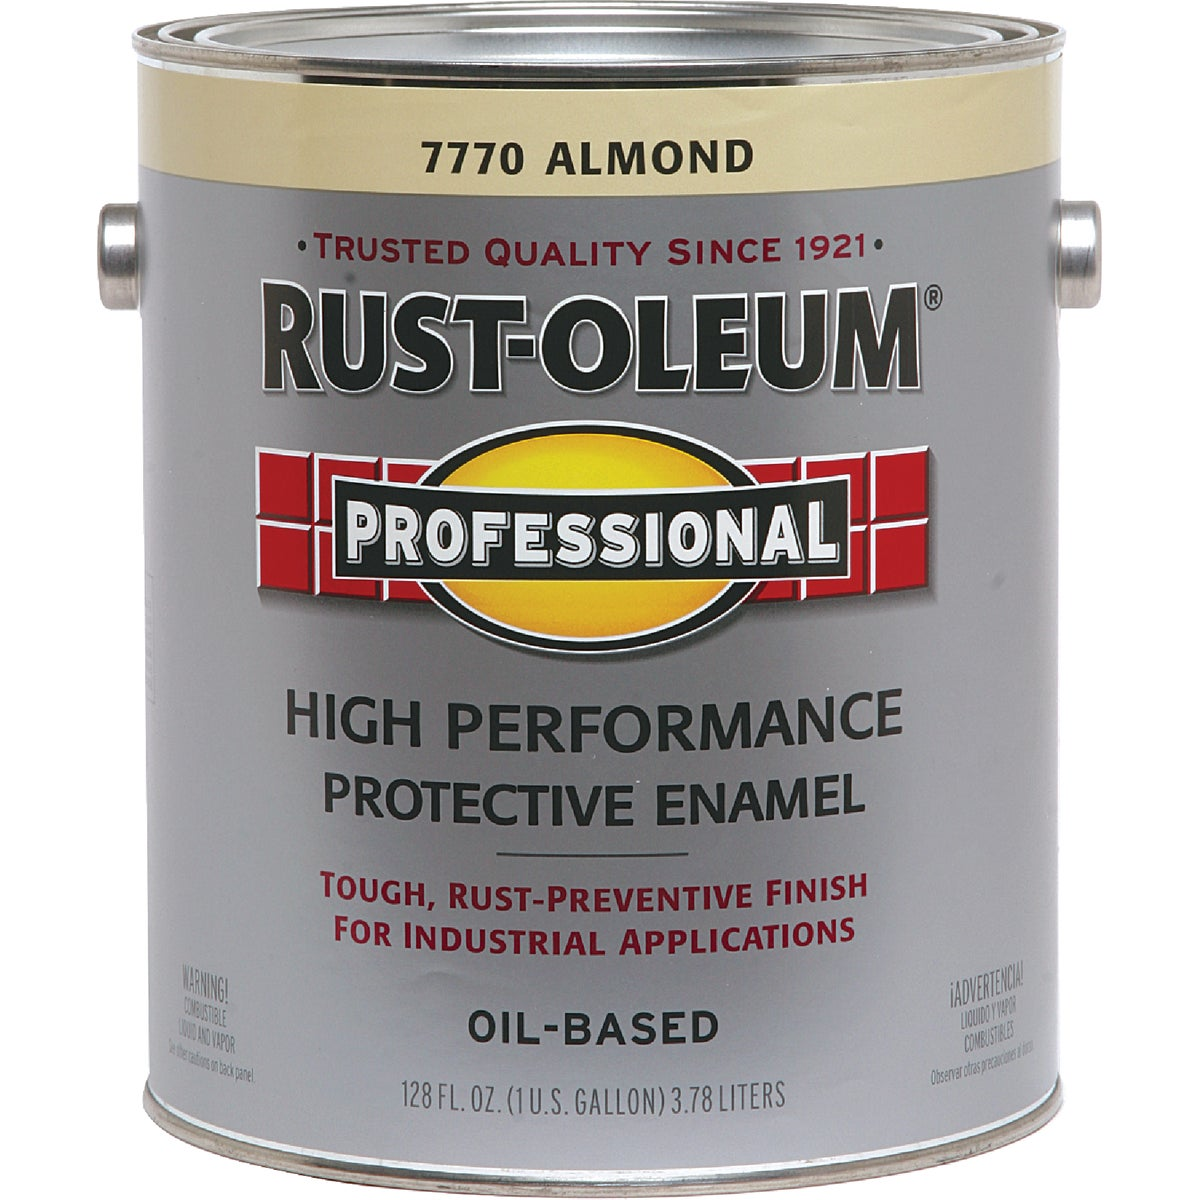 ALMOND ENAMEL - 7770-402 by Rustoleum